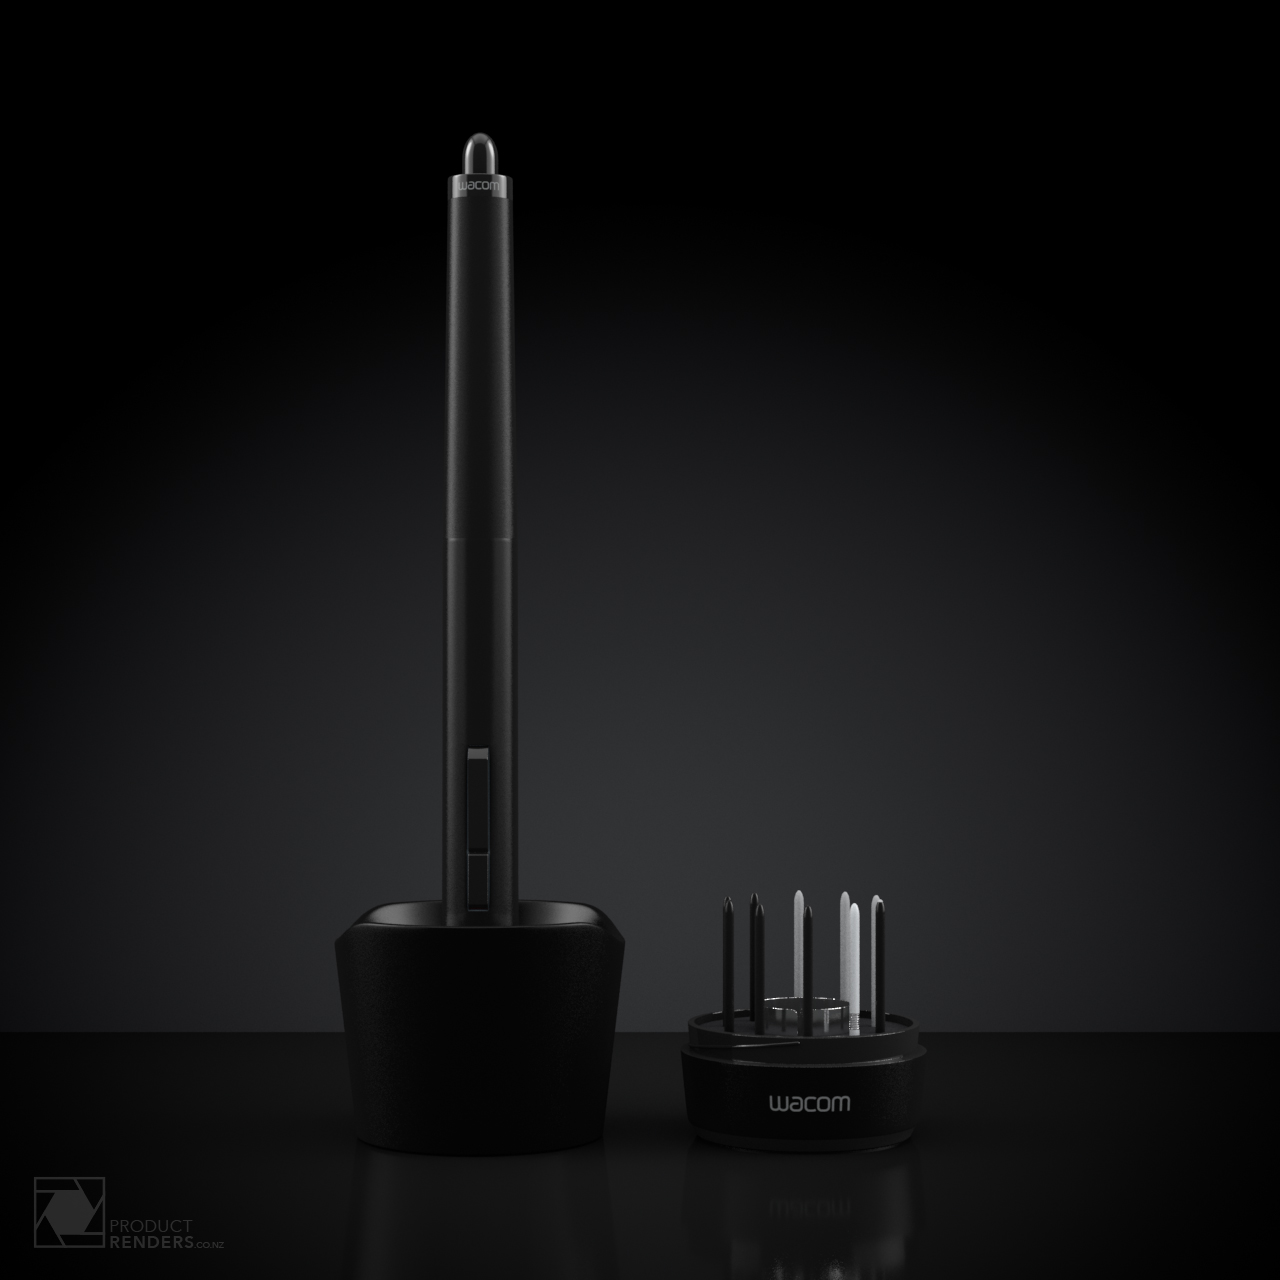 3D render of a Wacom 4 pen and open stand showing spare nibs and nib removal tool